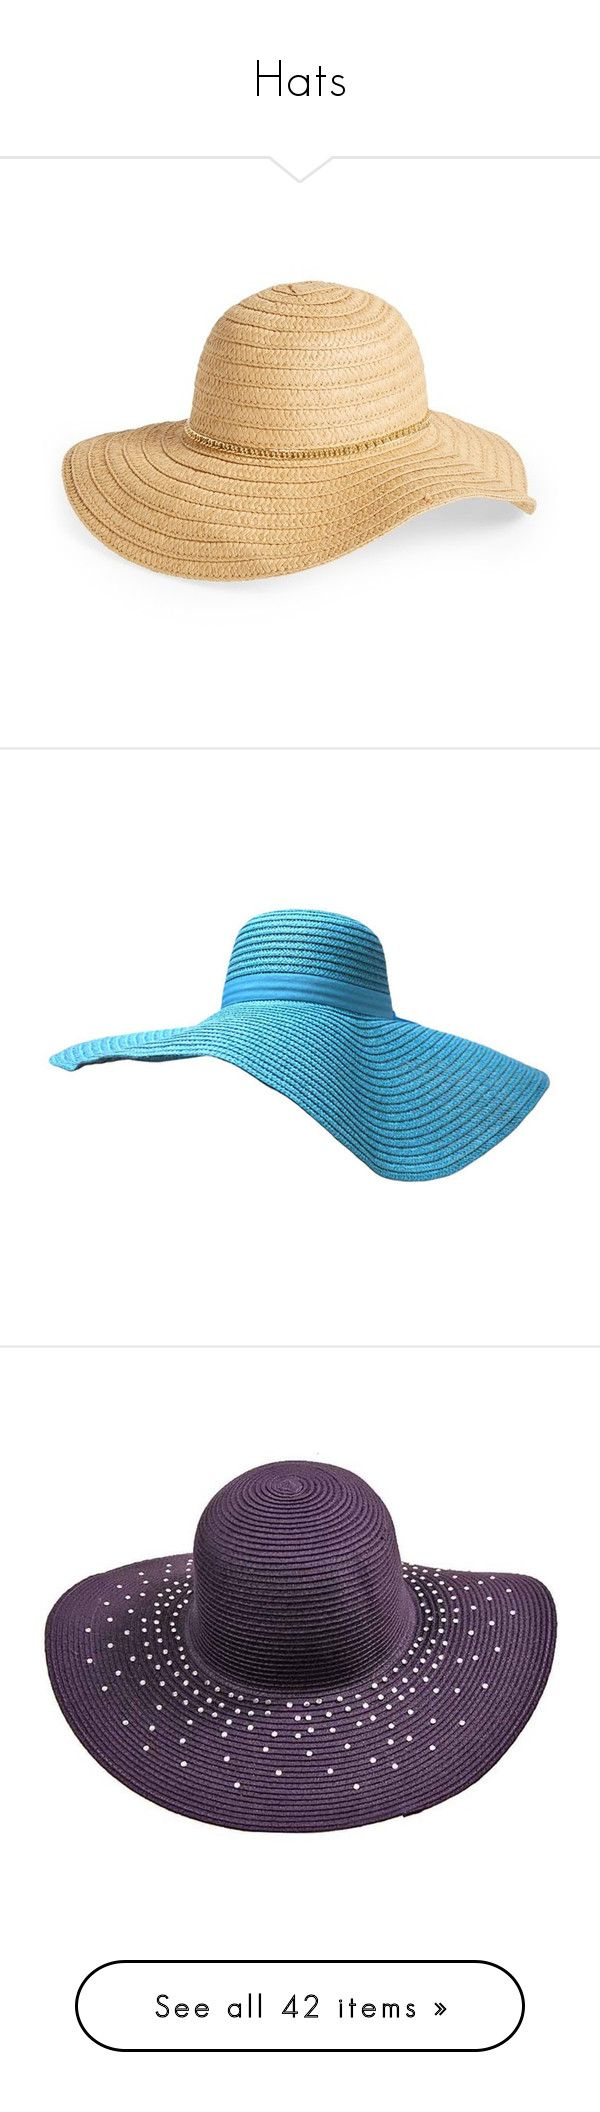 """Hats"" by thesassystewart on Polyvore featuring accessories, hats, hair accessories, natural, floppy straw hat, summer straw hats, straw hat, floppy summer hat, summer hats and turquoise"